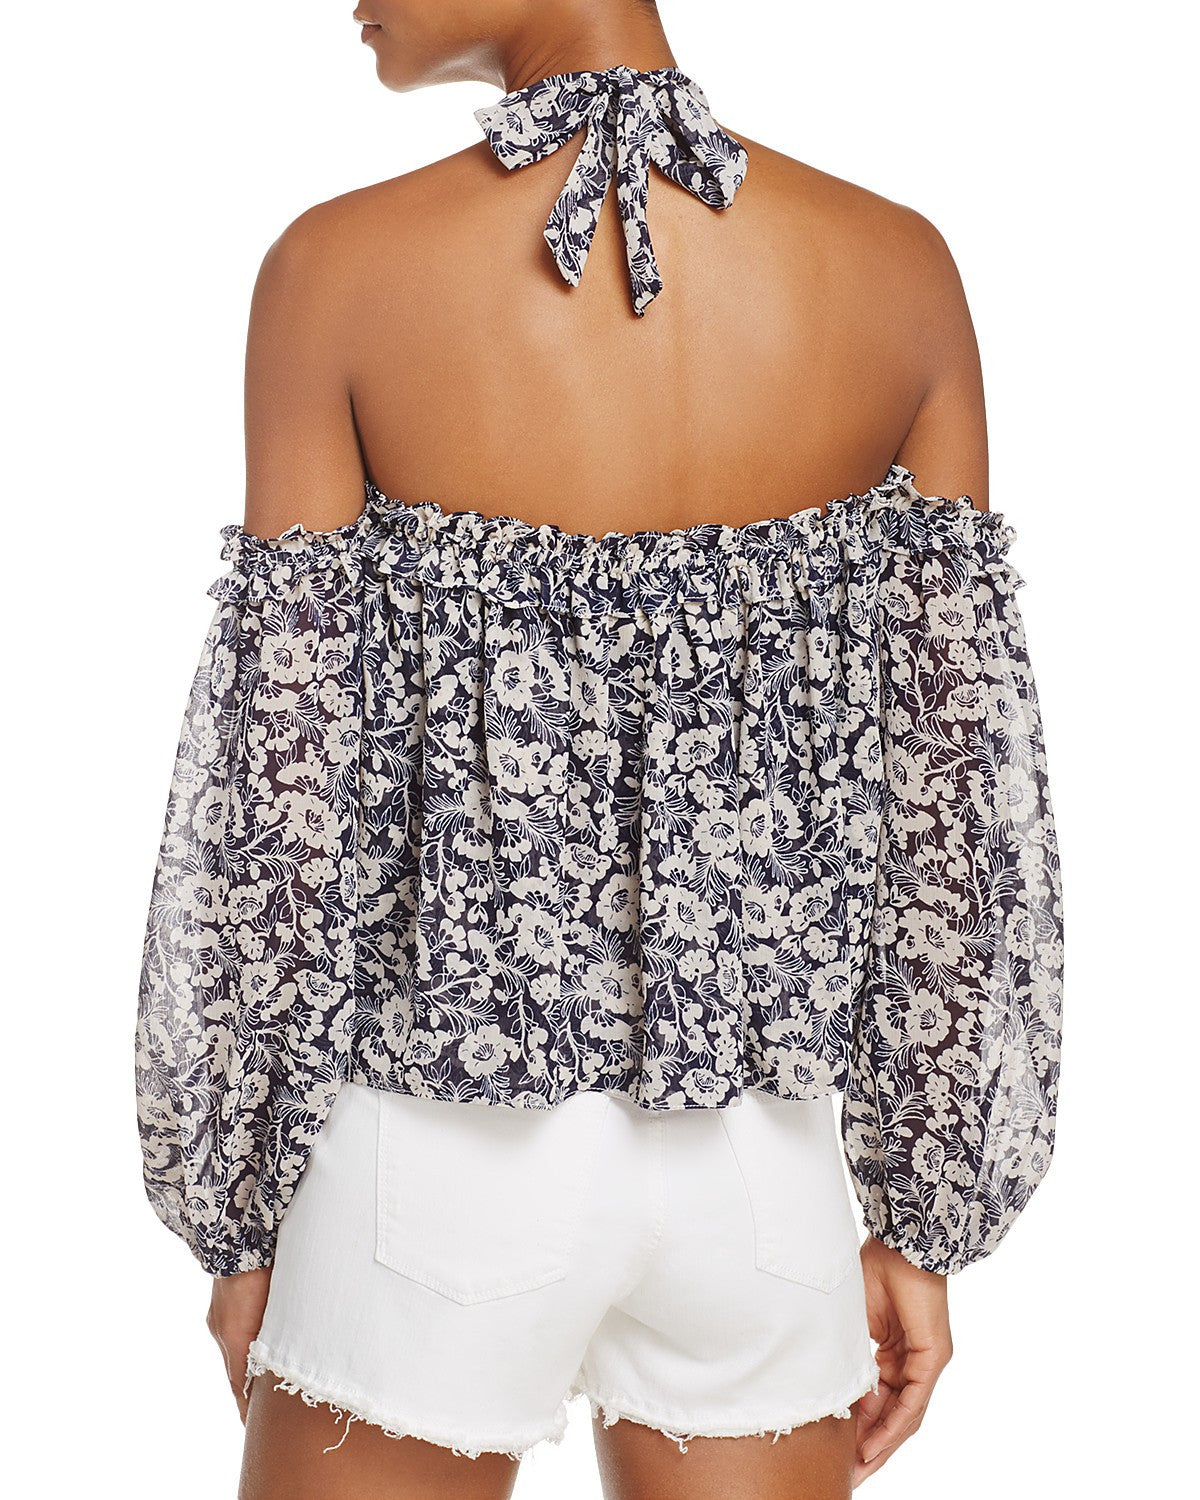 Lively Top dark floral